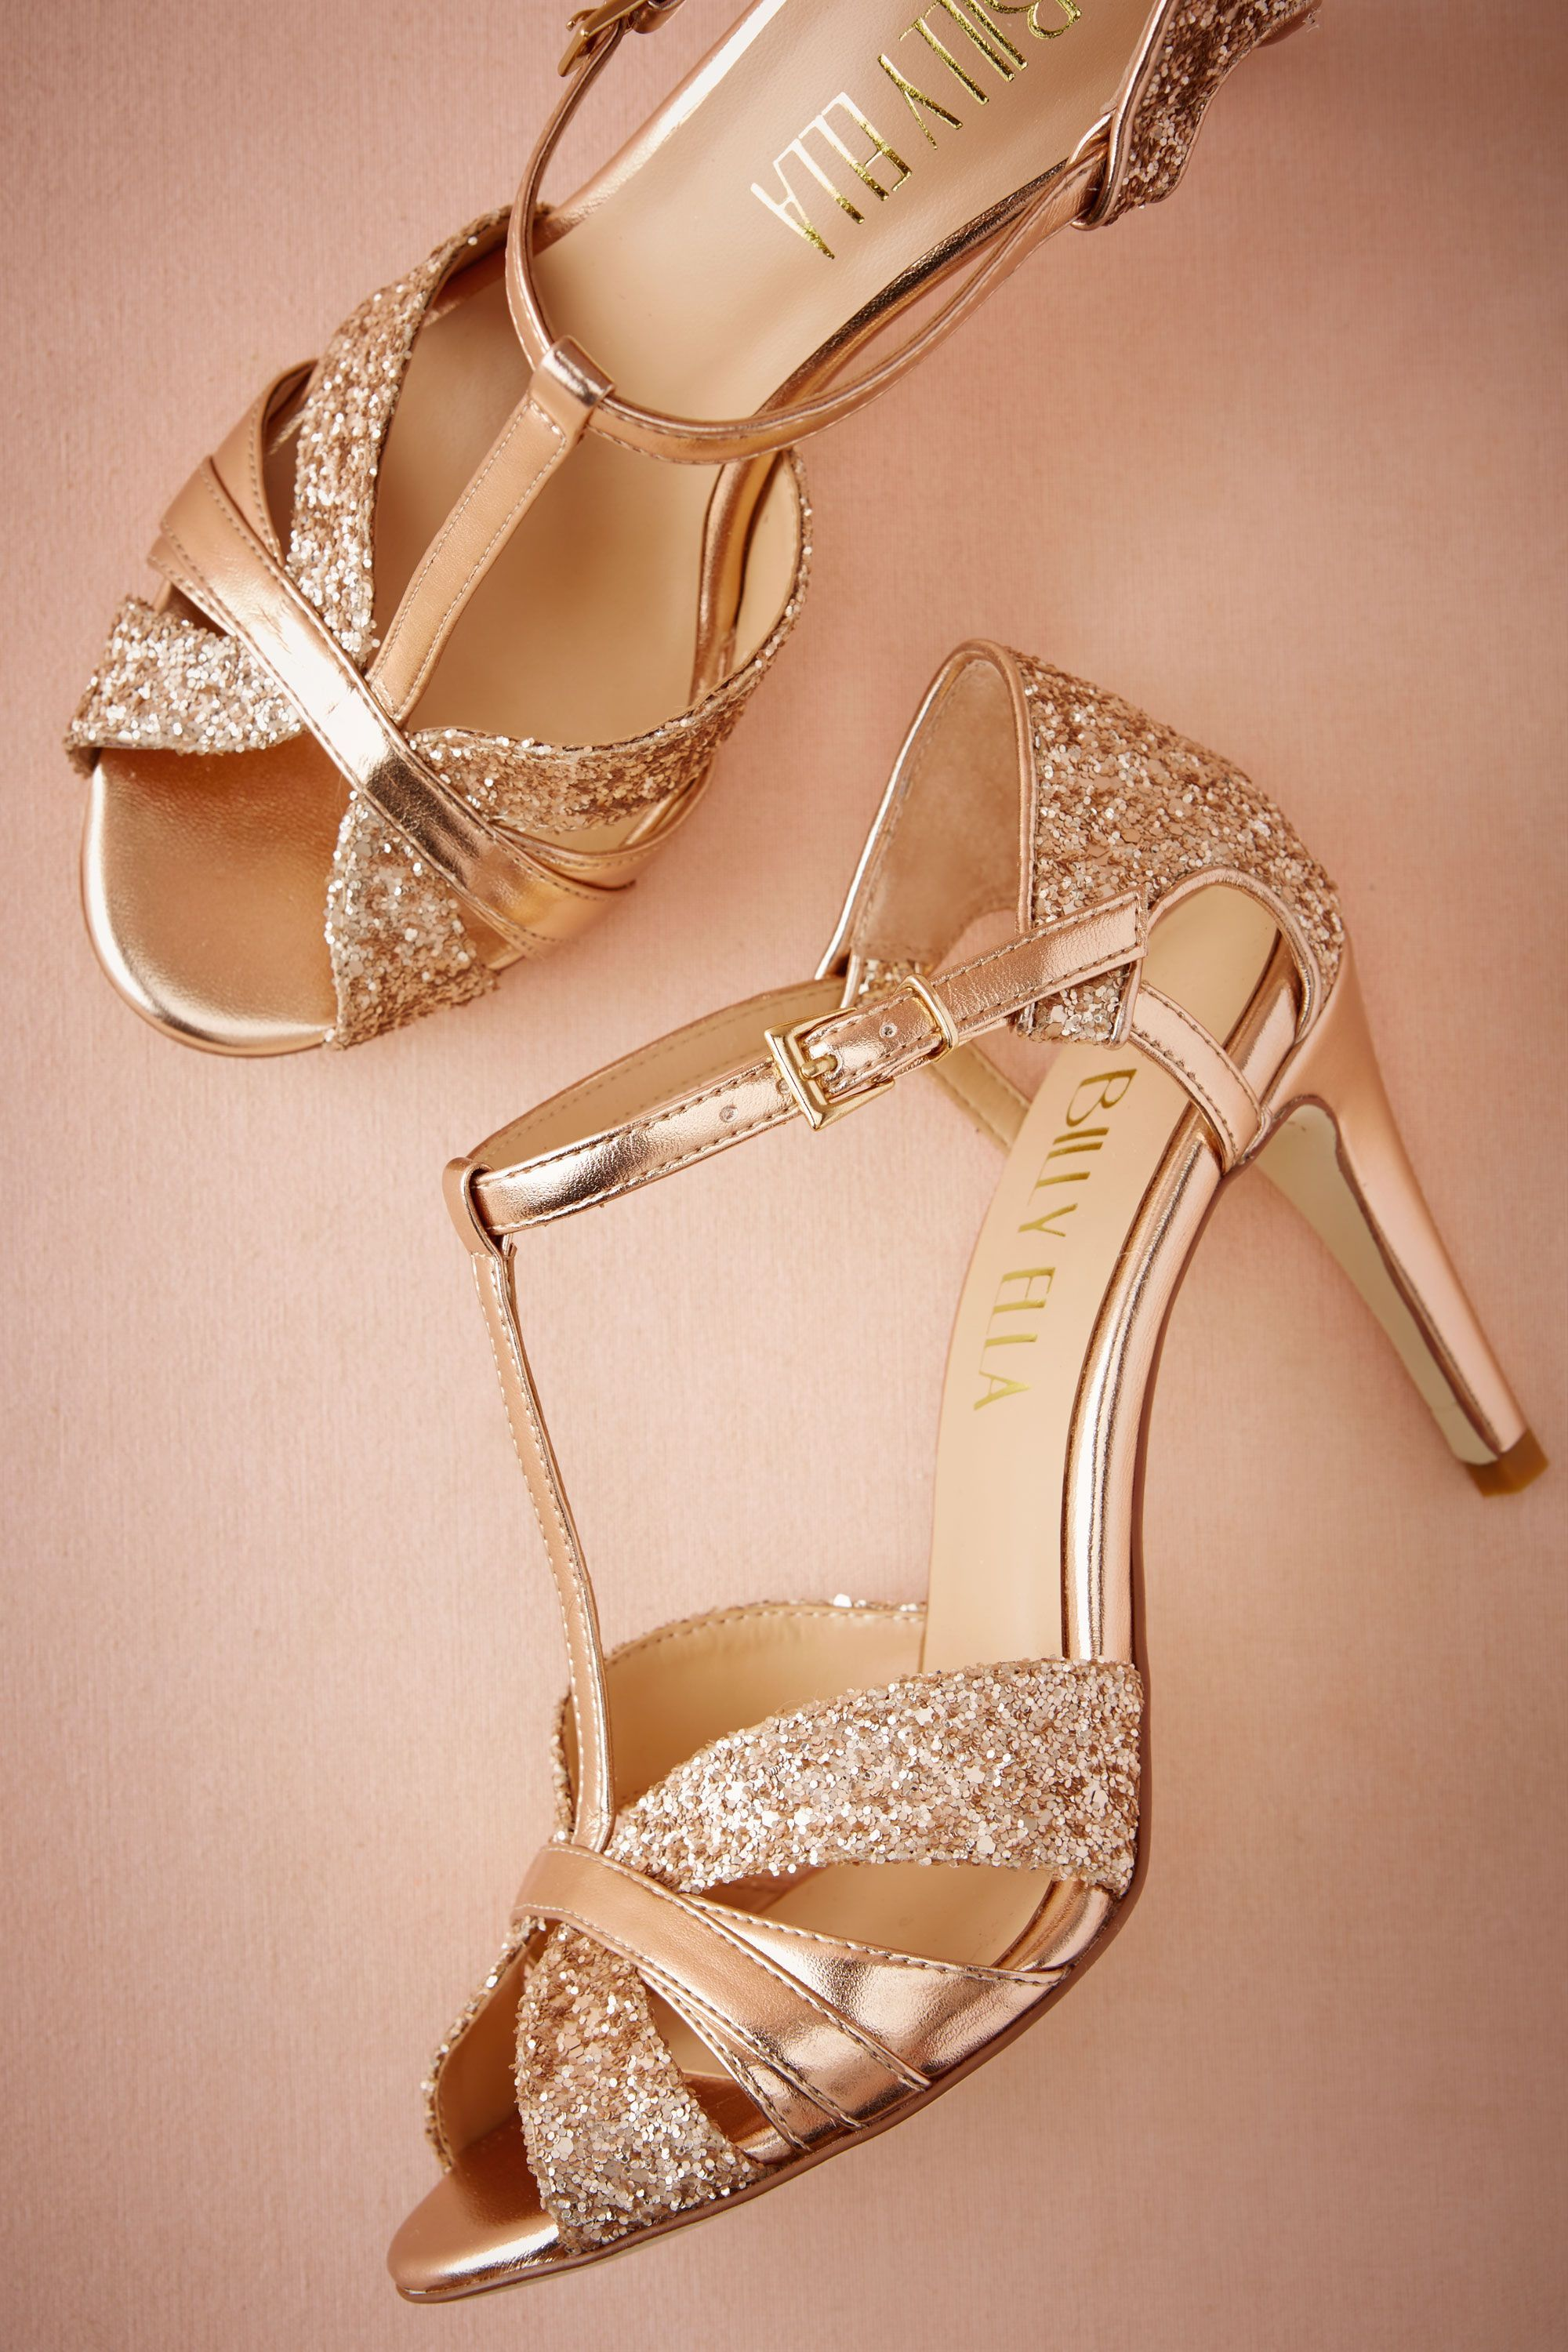 a86cfa672 Lucia T-Strap Heels  brideshoes Rose Gold Wedding Shoes